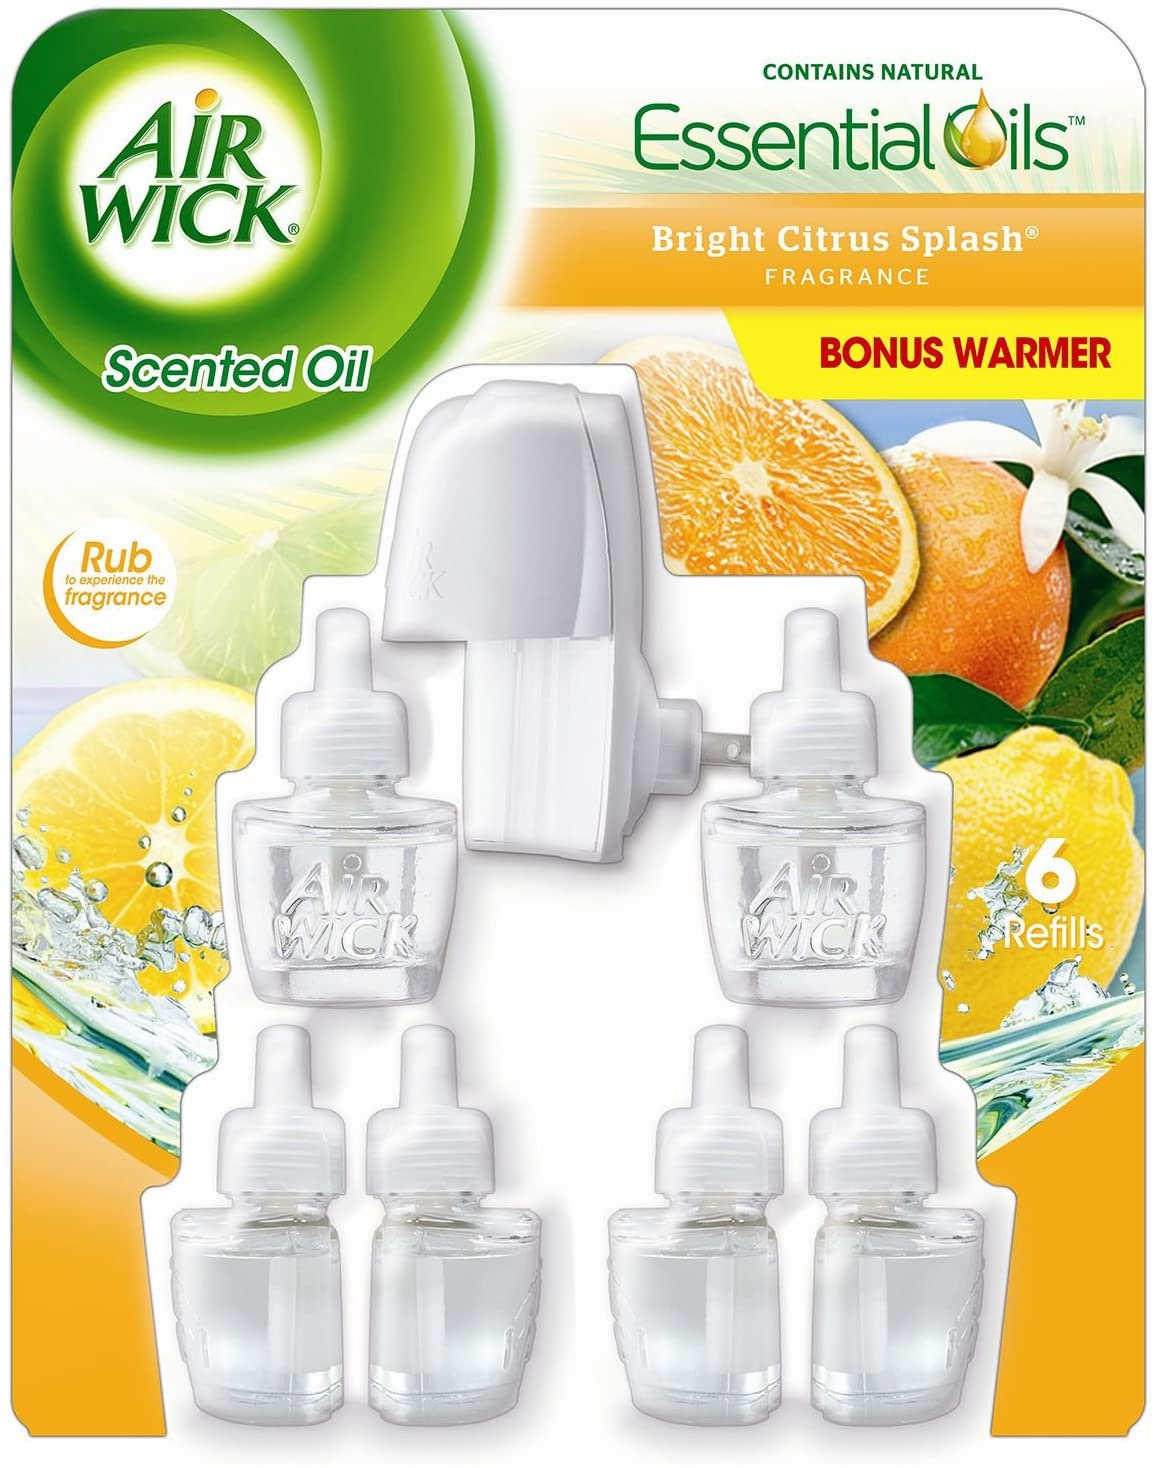 Air Wick Scented Oils - Bright Citrus Splash - Warmer & 6 Refills